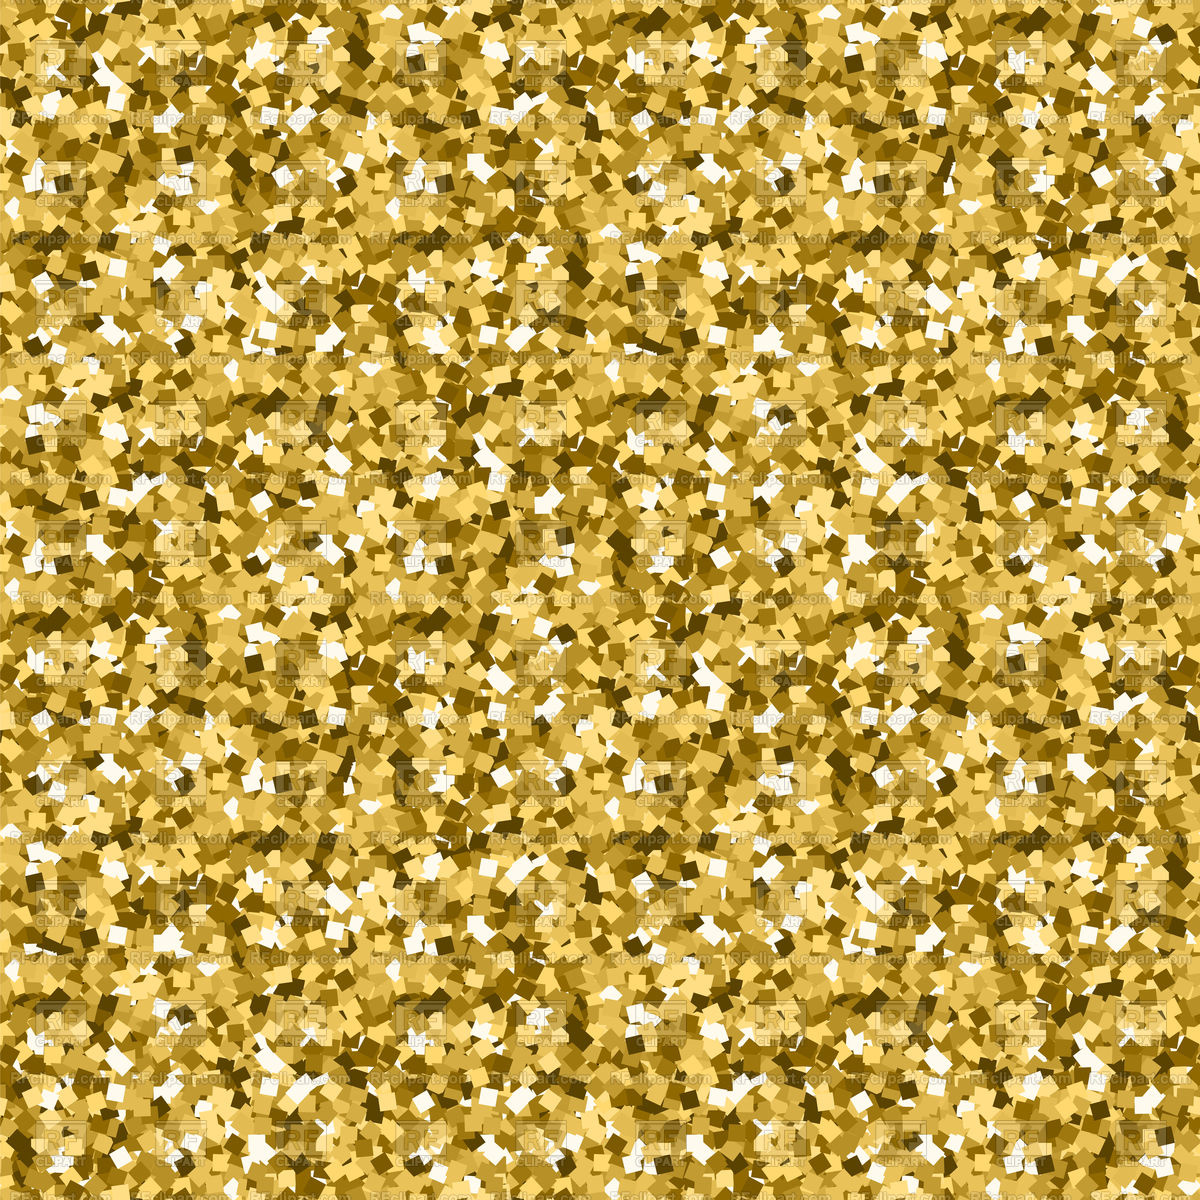 Gold Glitter Particle Background Stock Vector Image.